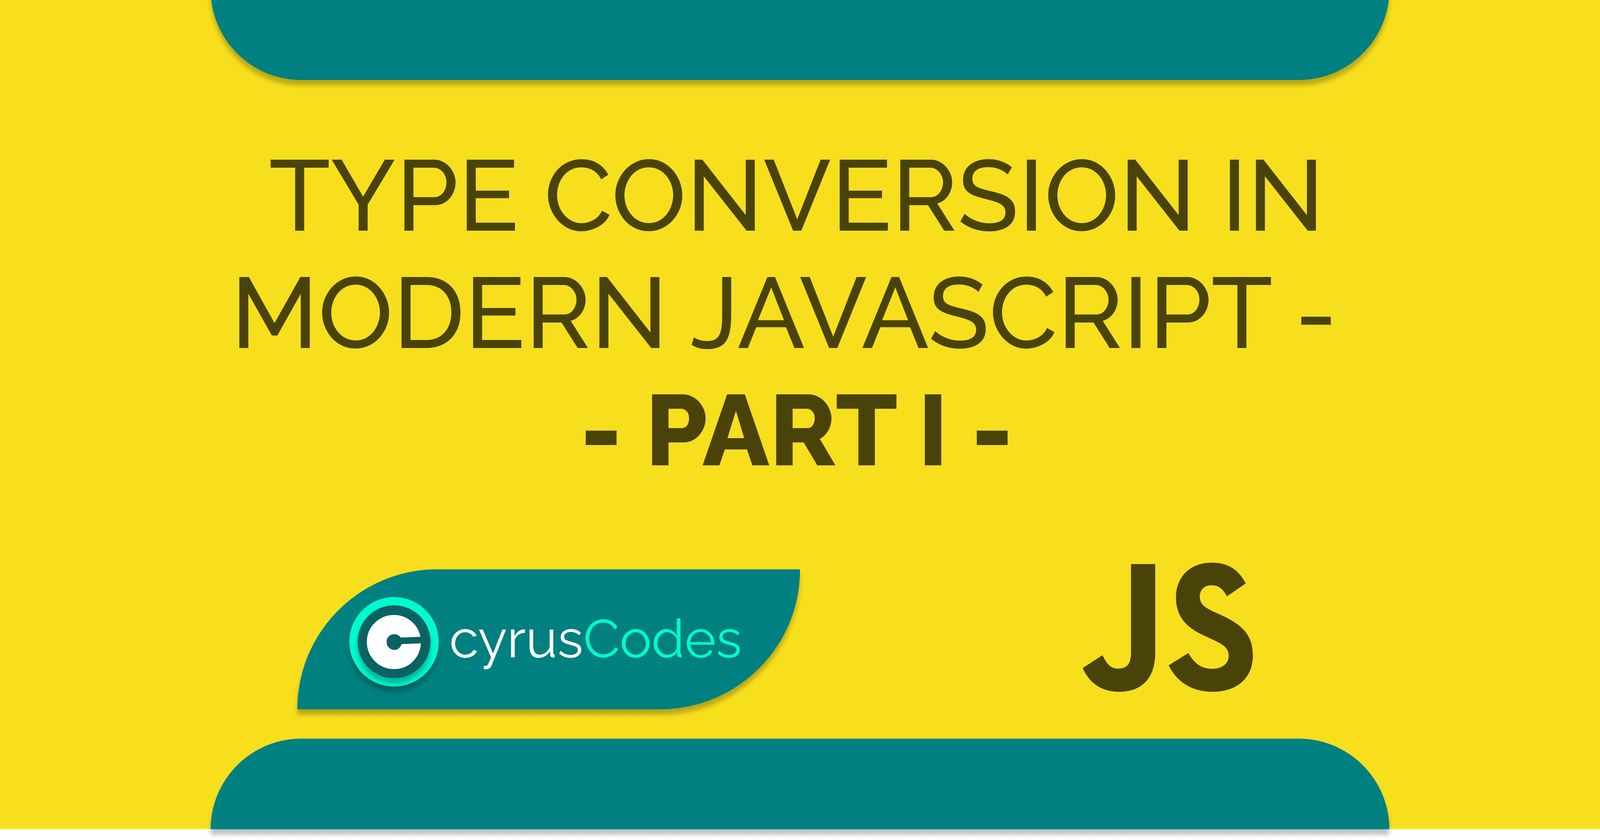 Type Conversion In Modern Javascript - Part I